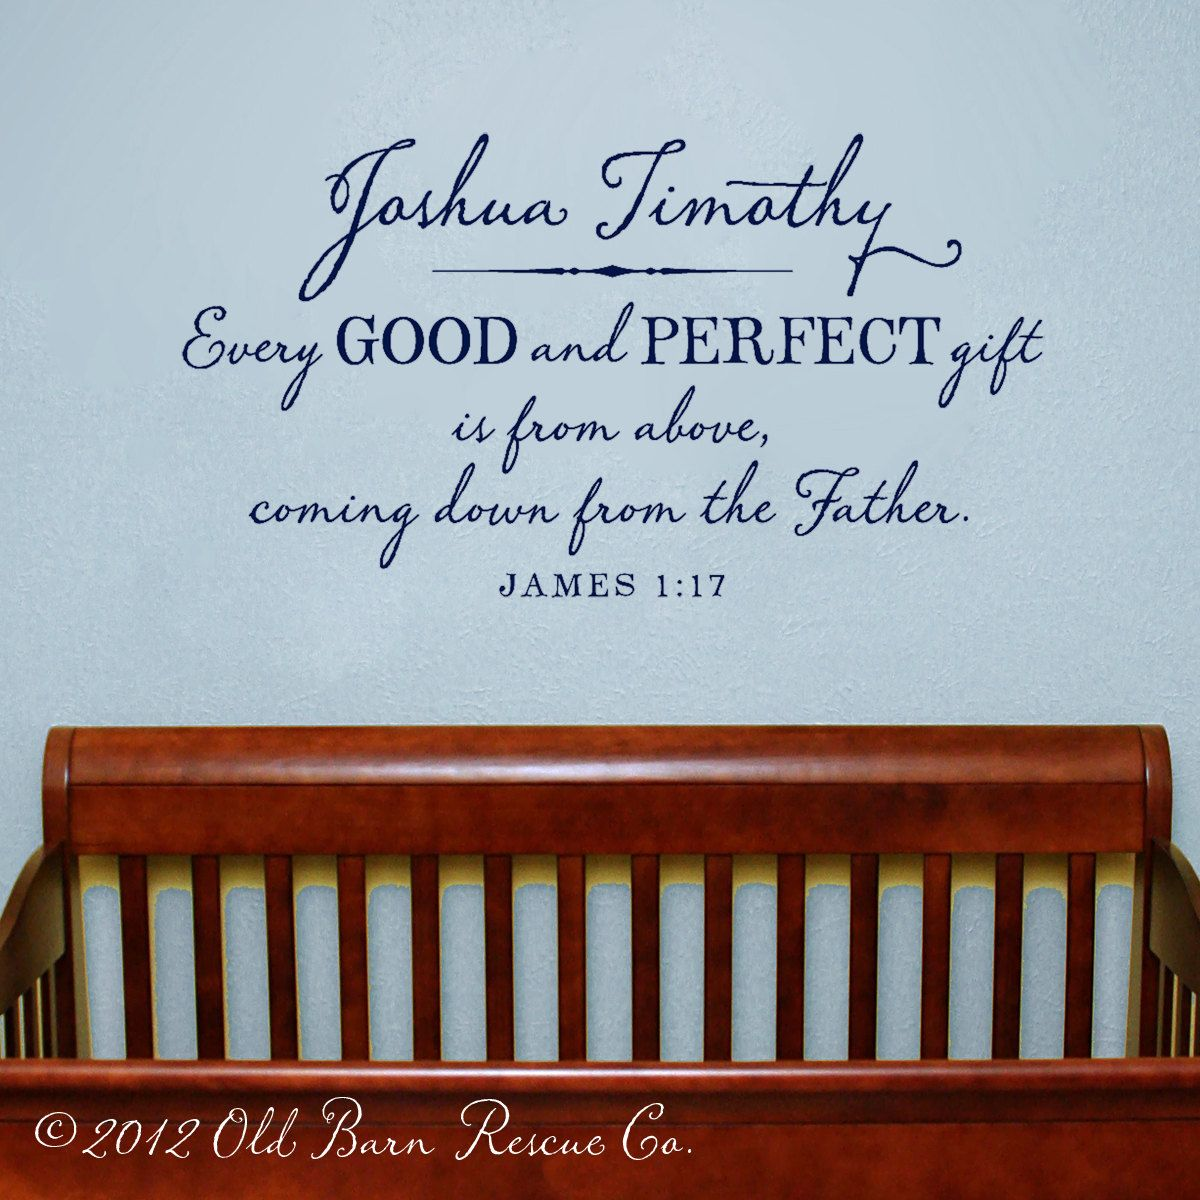 Every good and perfect giftrsonalized large boy nursery every good and perfect giftrsonalized large boy nursery scripture vinyl decal sign negle Choice Image